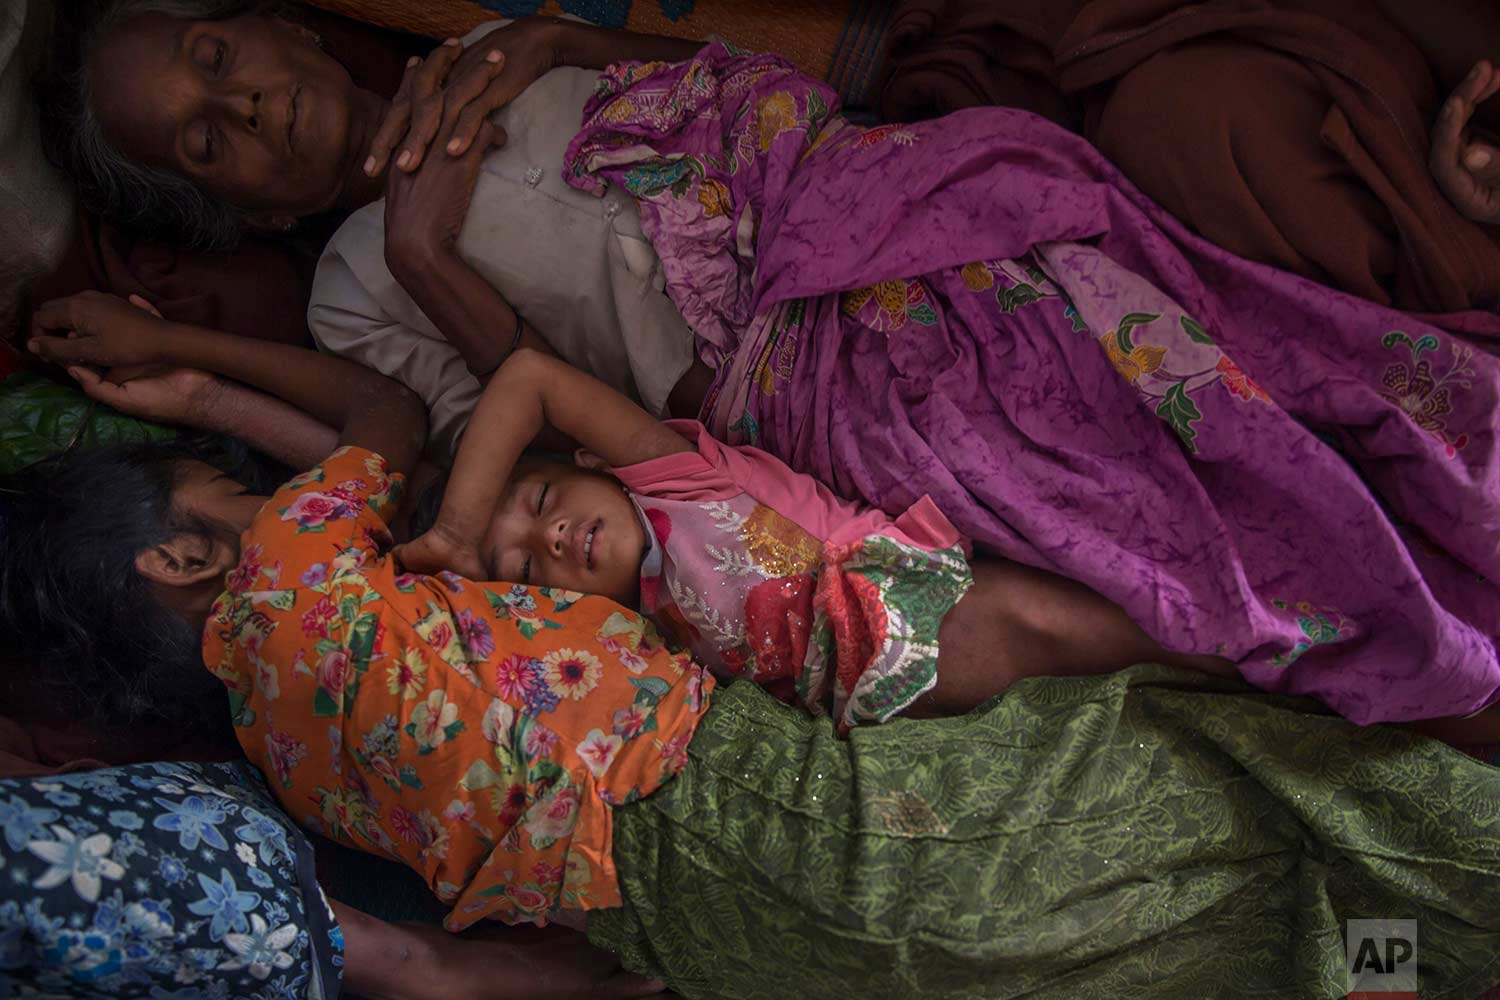 A Rohingya Muslim girl Asma Bibi, center, sleeps between her grandmother and sister in a dormitory of a school as they wait for their family to be registered as refugees after which they will be allowed to proceed to build a shelter in Kutupalong refugee camp, Bangladesh, Friday, Oct. 20, 2017.(AP Photo/Dar Yasin)